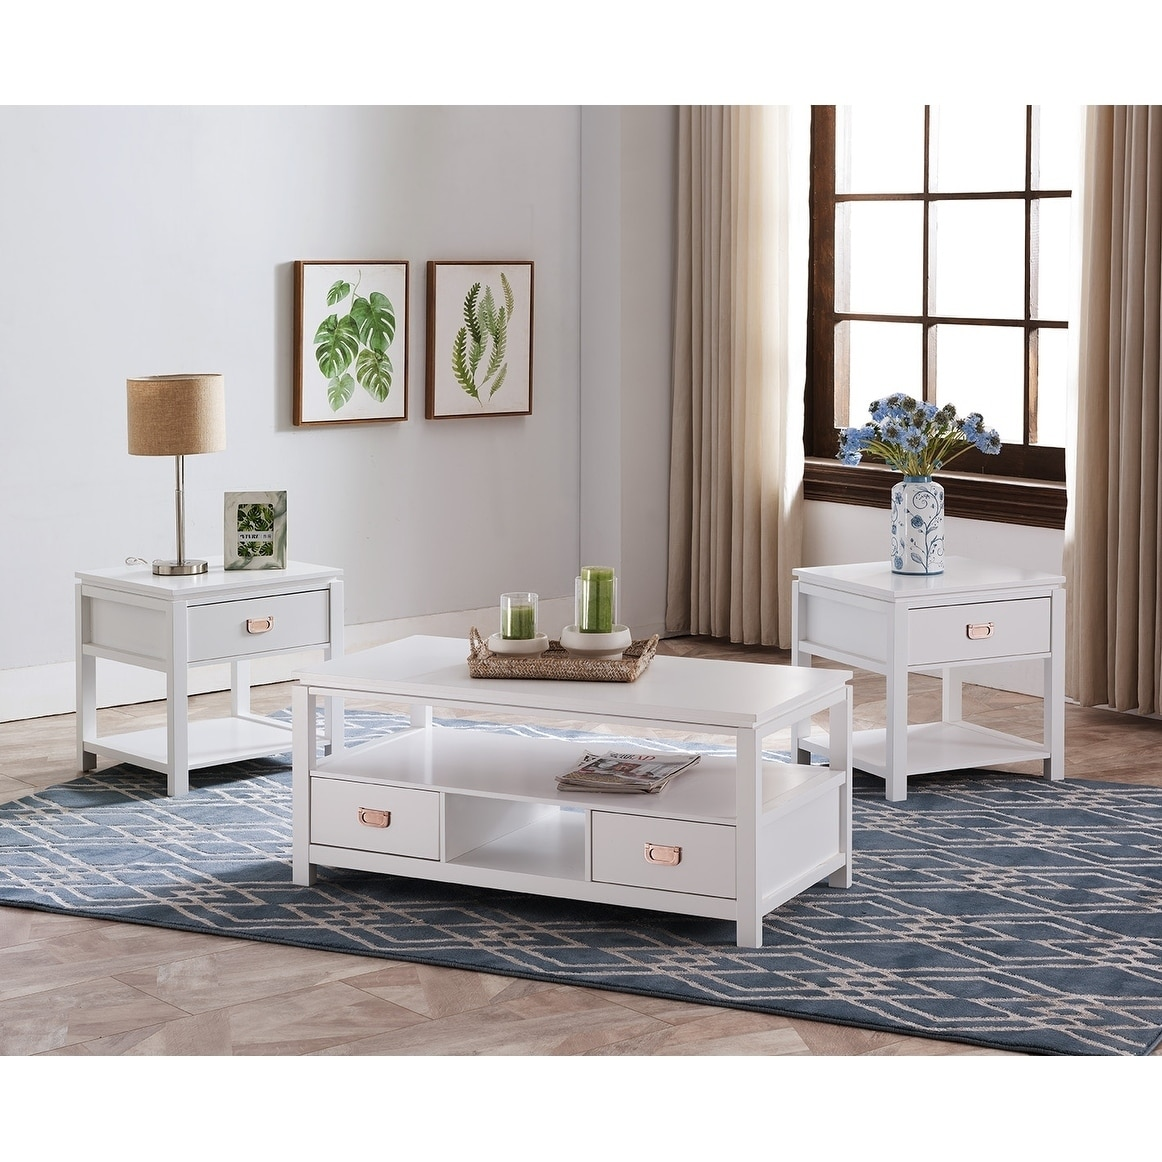 - Shop White Finish Wood 3 Pack Coffee Table Set - Overstock - 21931974